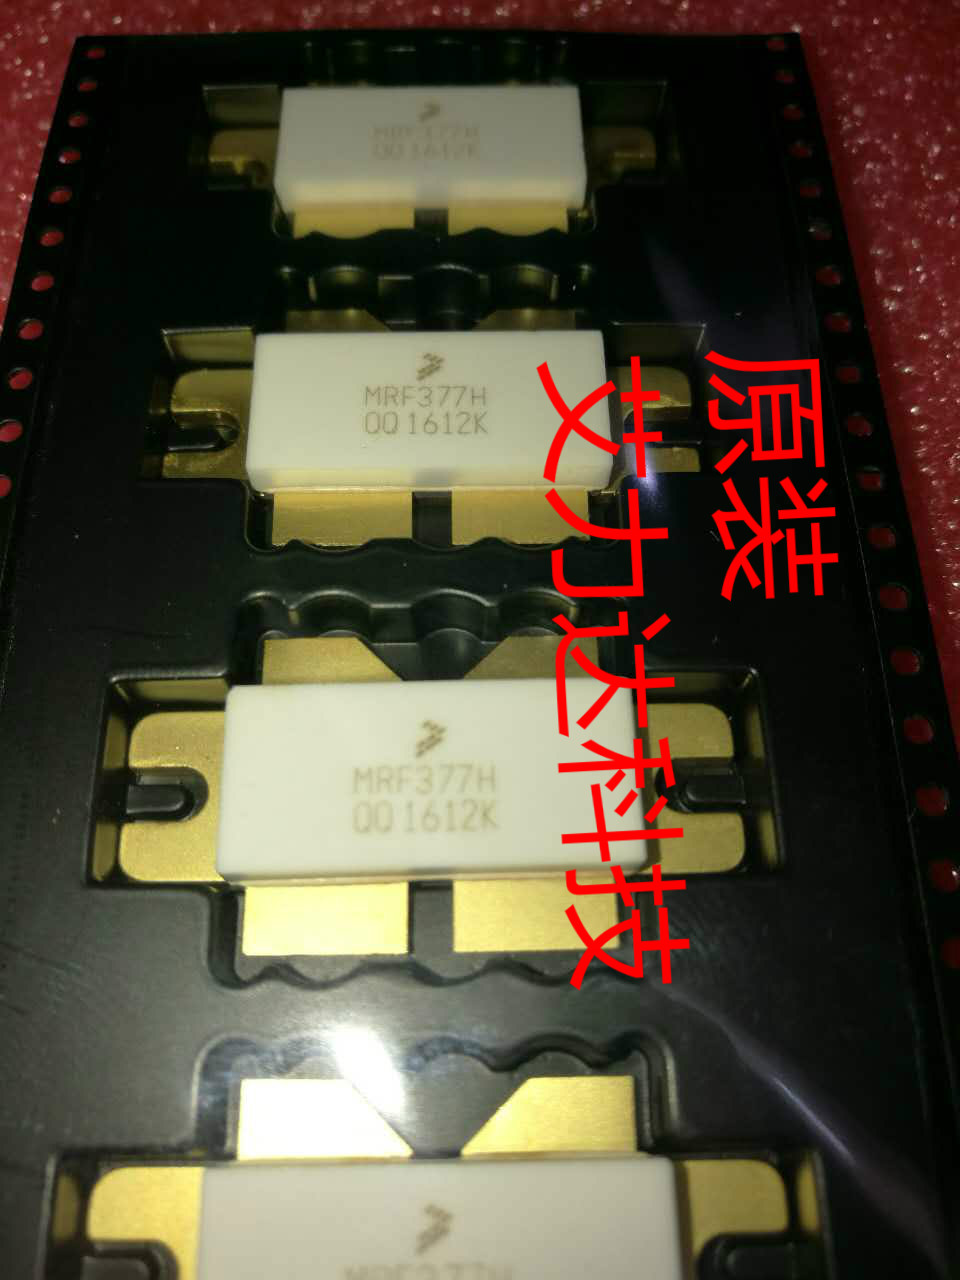 FreeShipping High Frequency Module of MRF377H High Frequency Tube Microwave Tube image